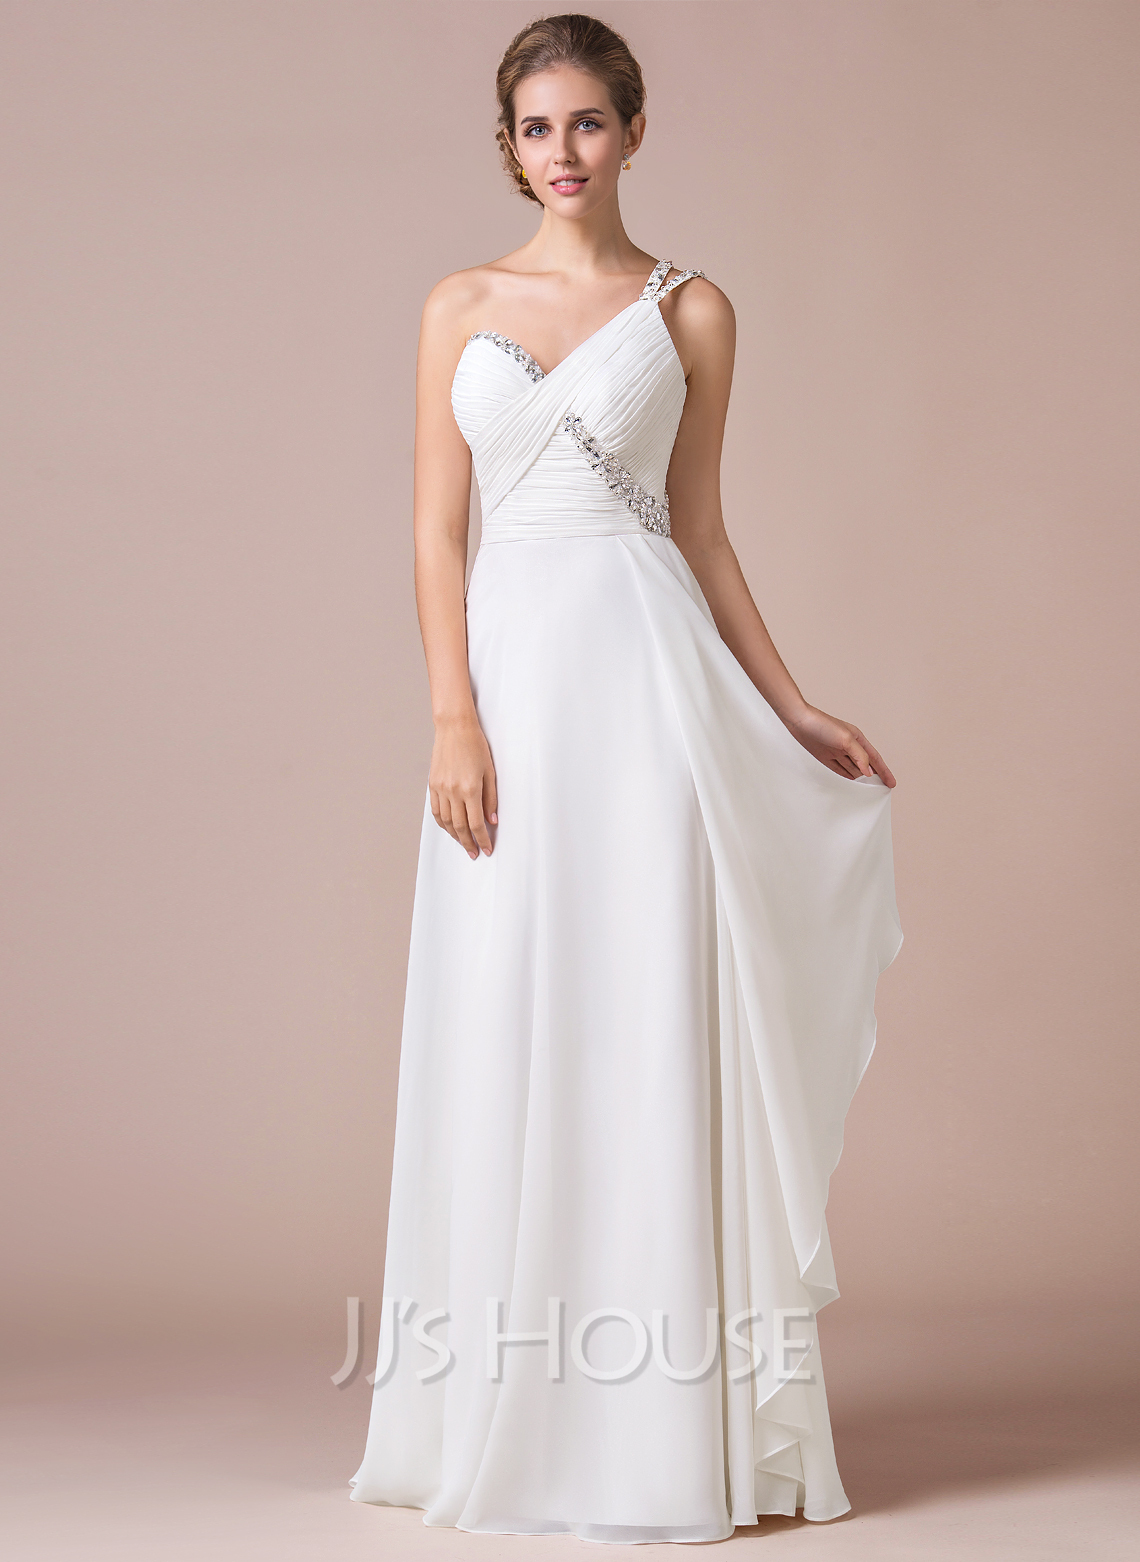 One-Shoulder Floor-Length Chiffon Prom Dresses With Ruffle Beading Sequins